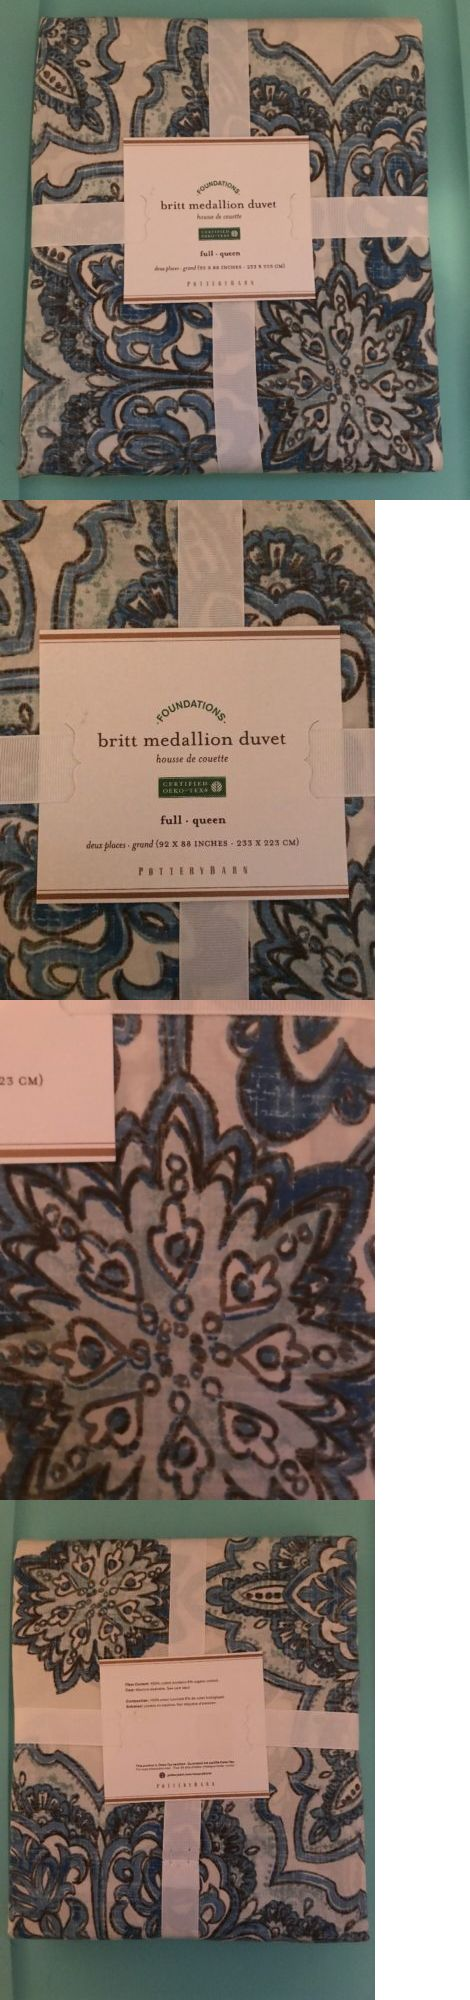 Duvet Covers and Sets 37644: Pottery Barn Duvet Cover Foundations Britt Medallion Full Queen *New With Tags* -> BUY IT NOW ONLY: $49.99 on eBay!